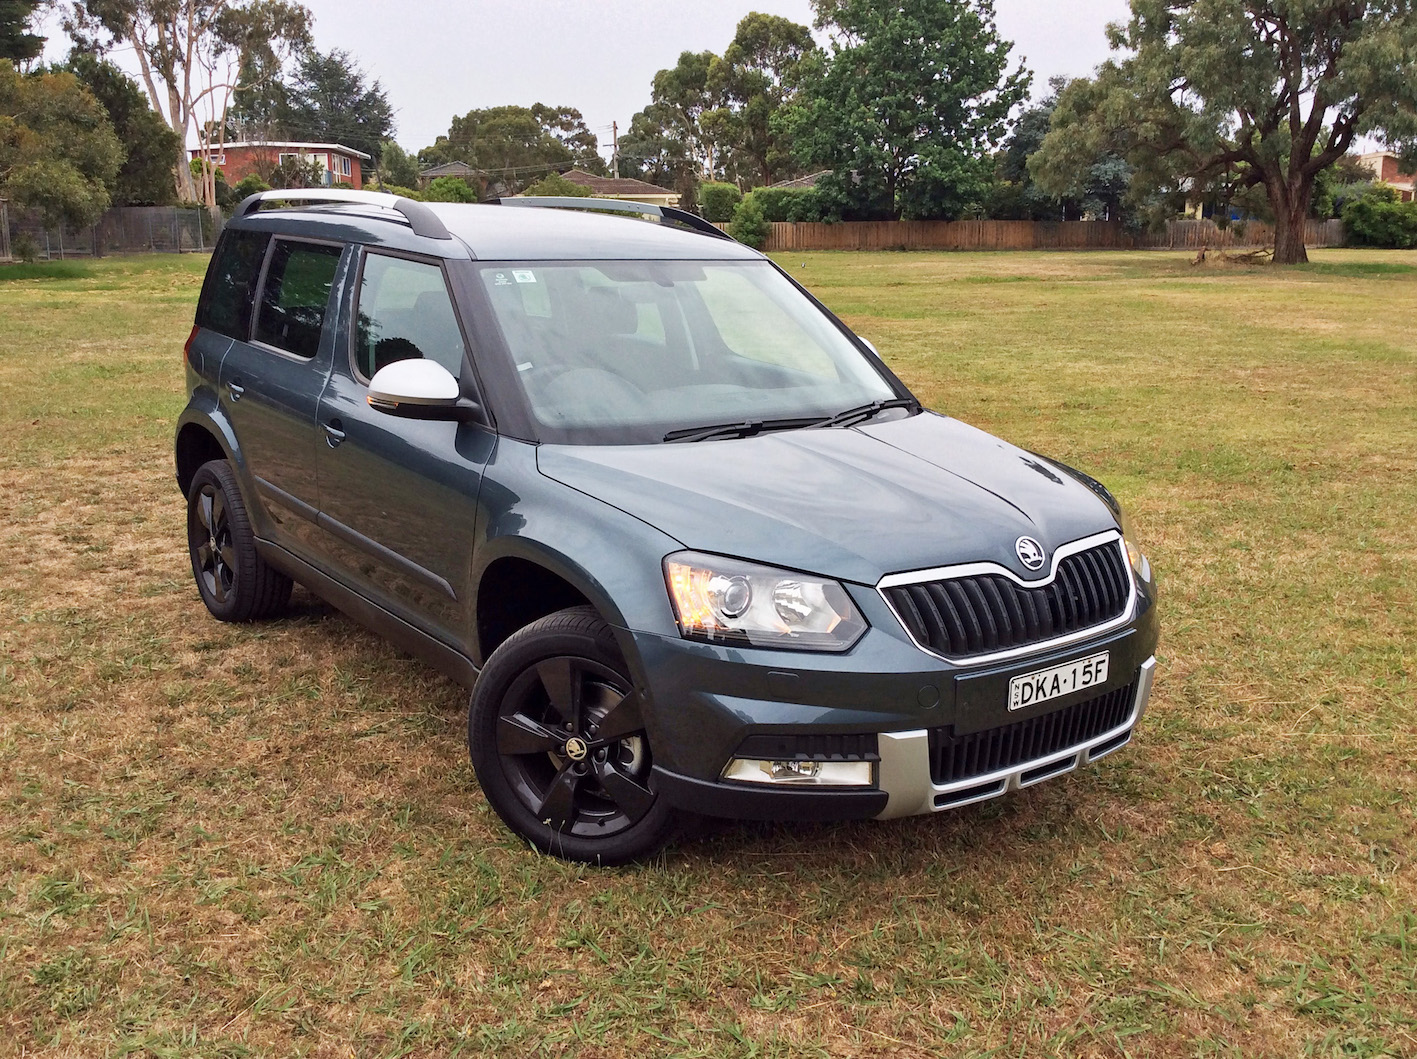 2017 Skoda Yeti Outdoor 110TSI 4x4 Review | A Sporty Twist For The Compact Czech SUV…And It's Good